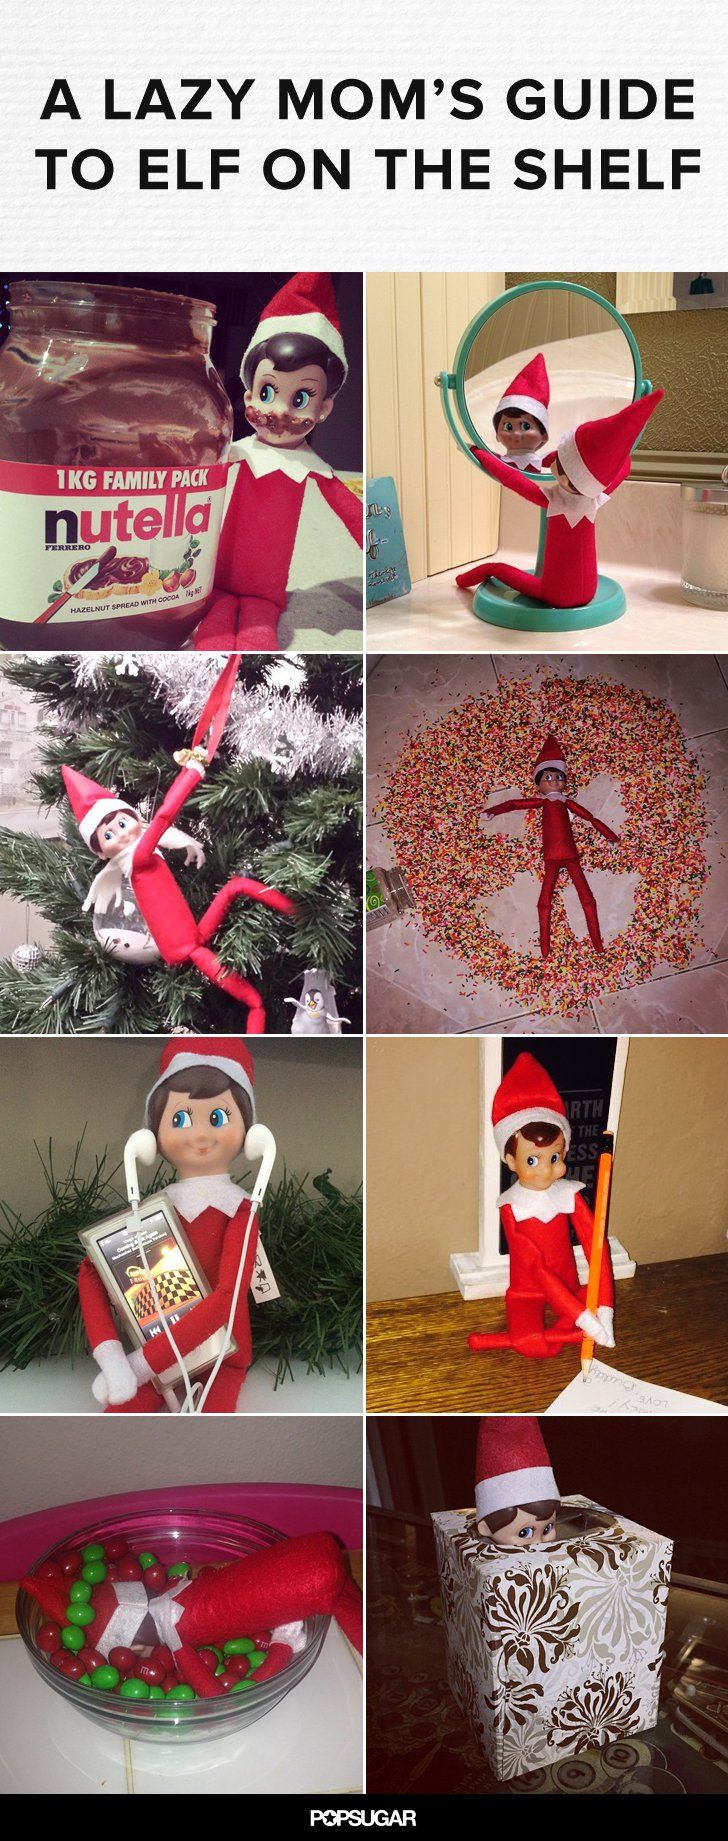 21 Elf on the Shelf Ideas For the Lazy Mom